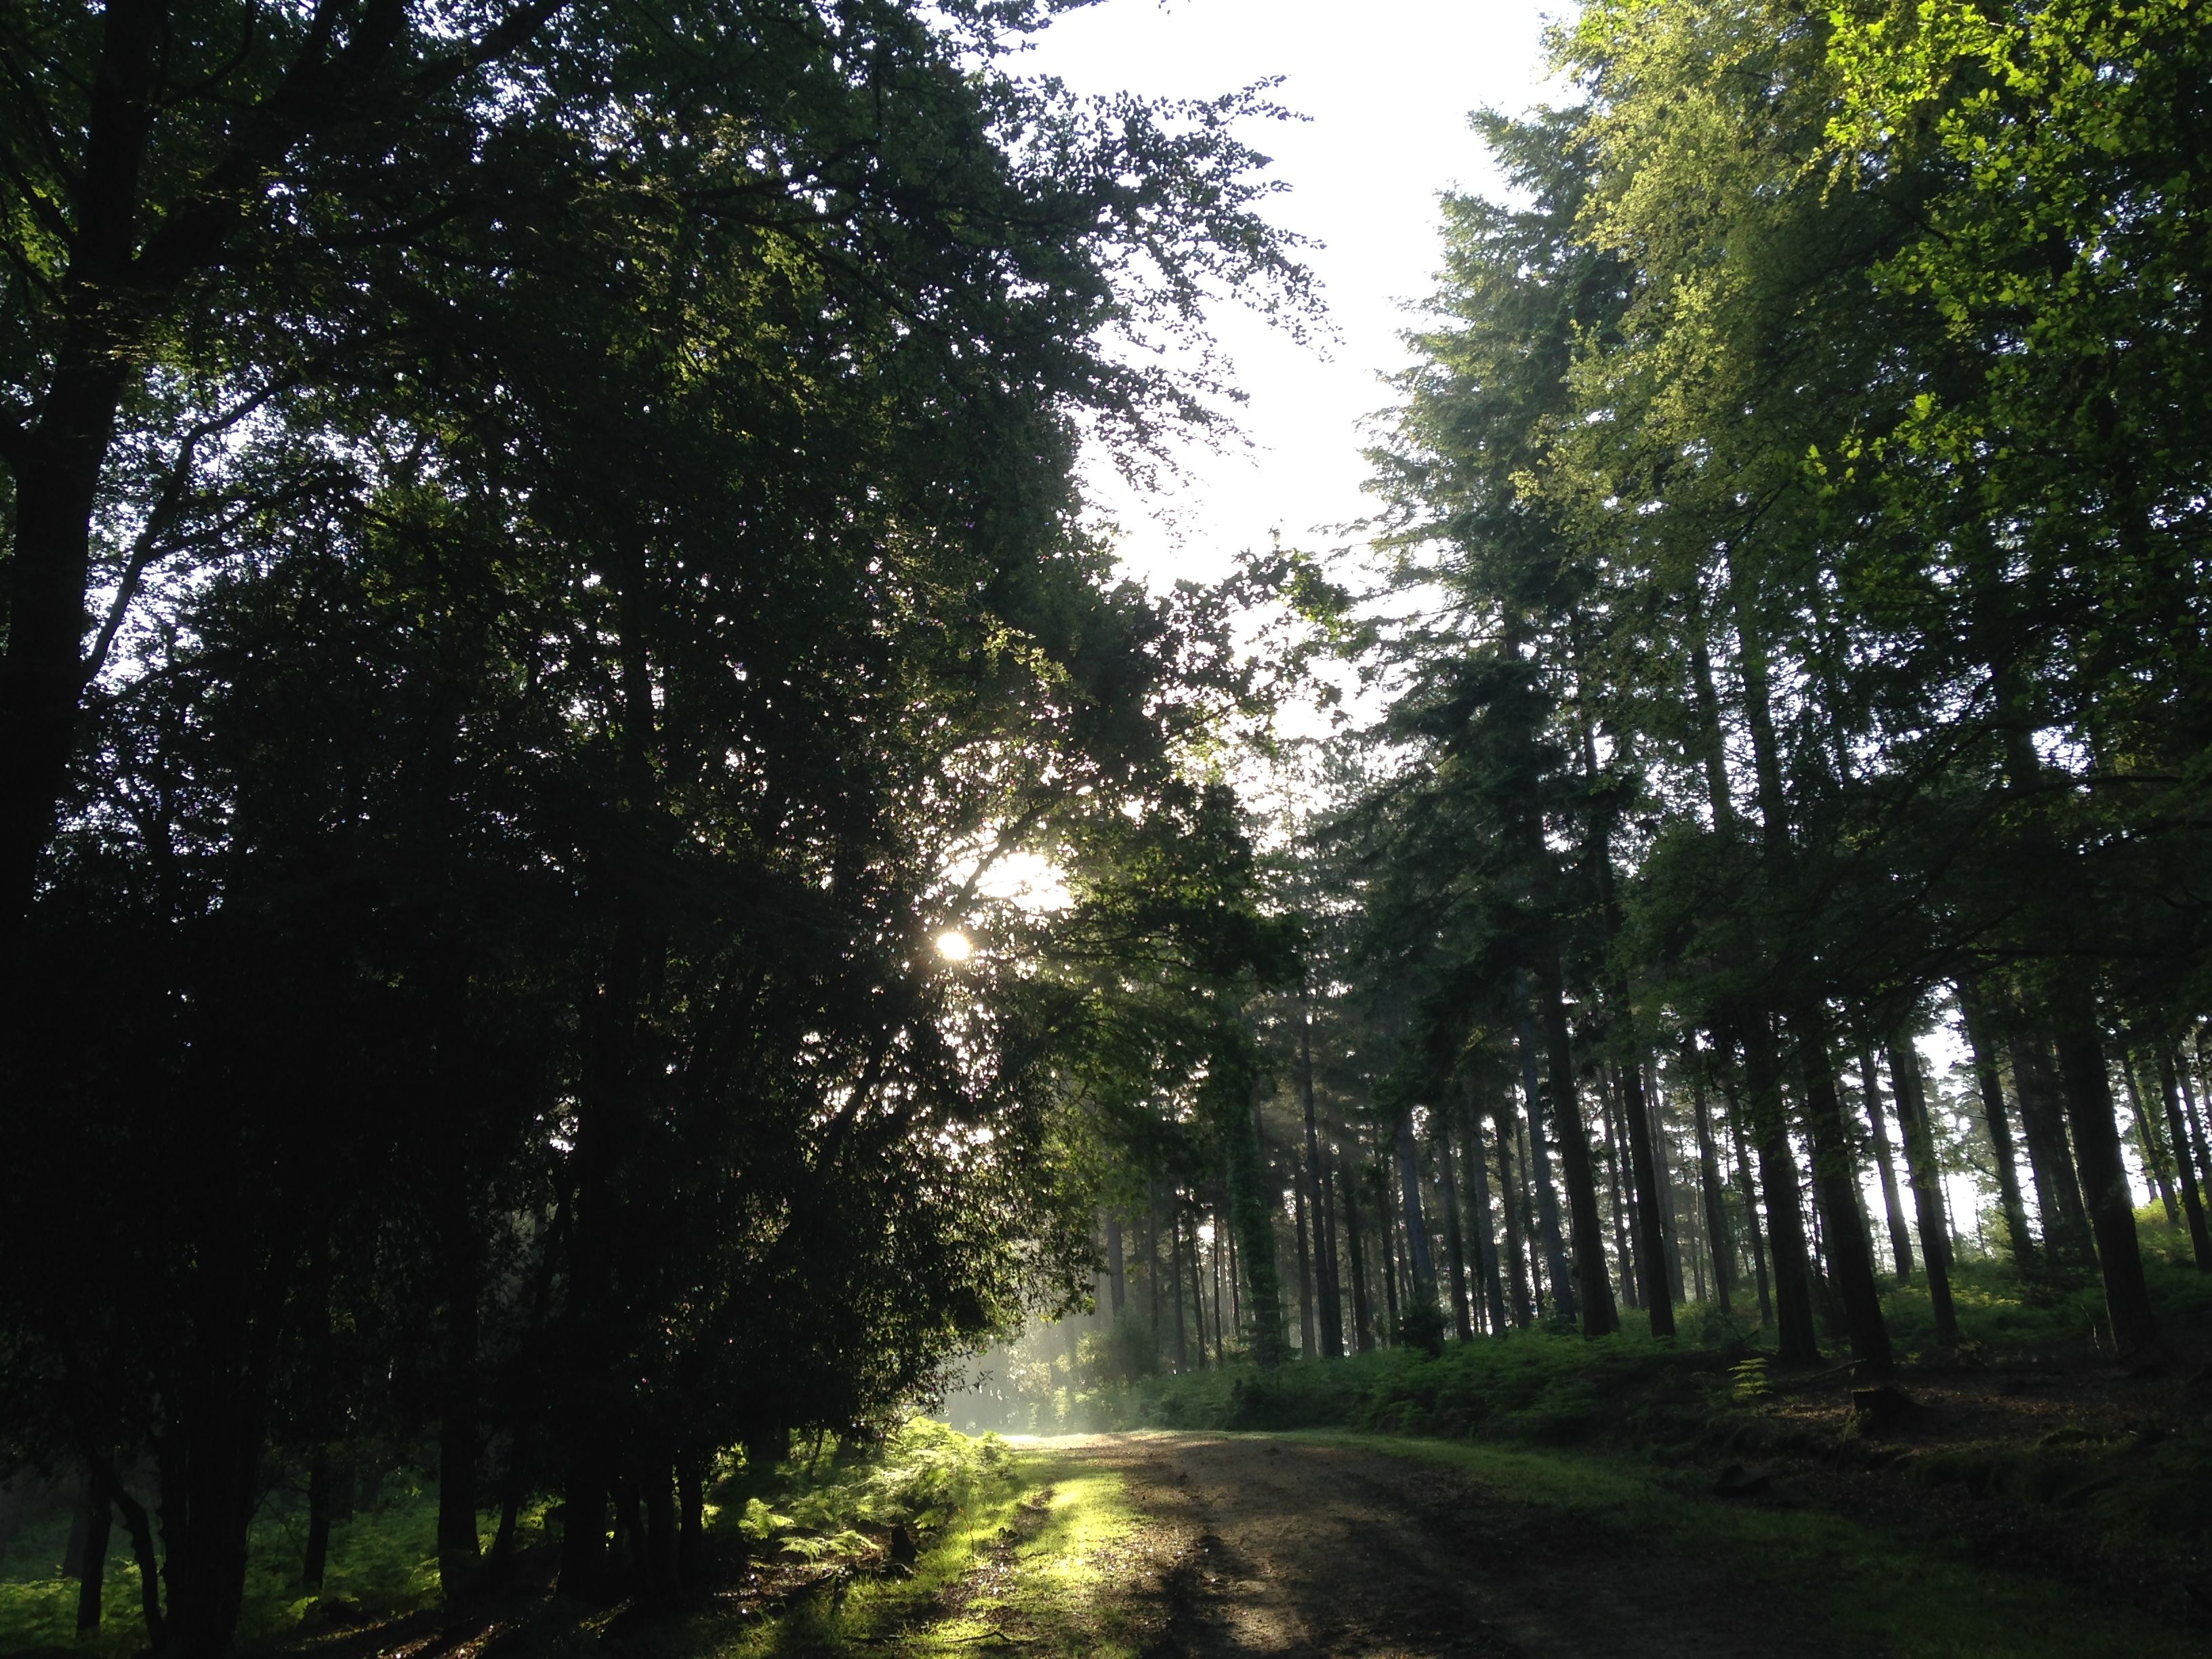 The New Forest has 13.5 million day visits each year.